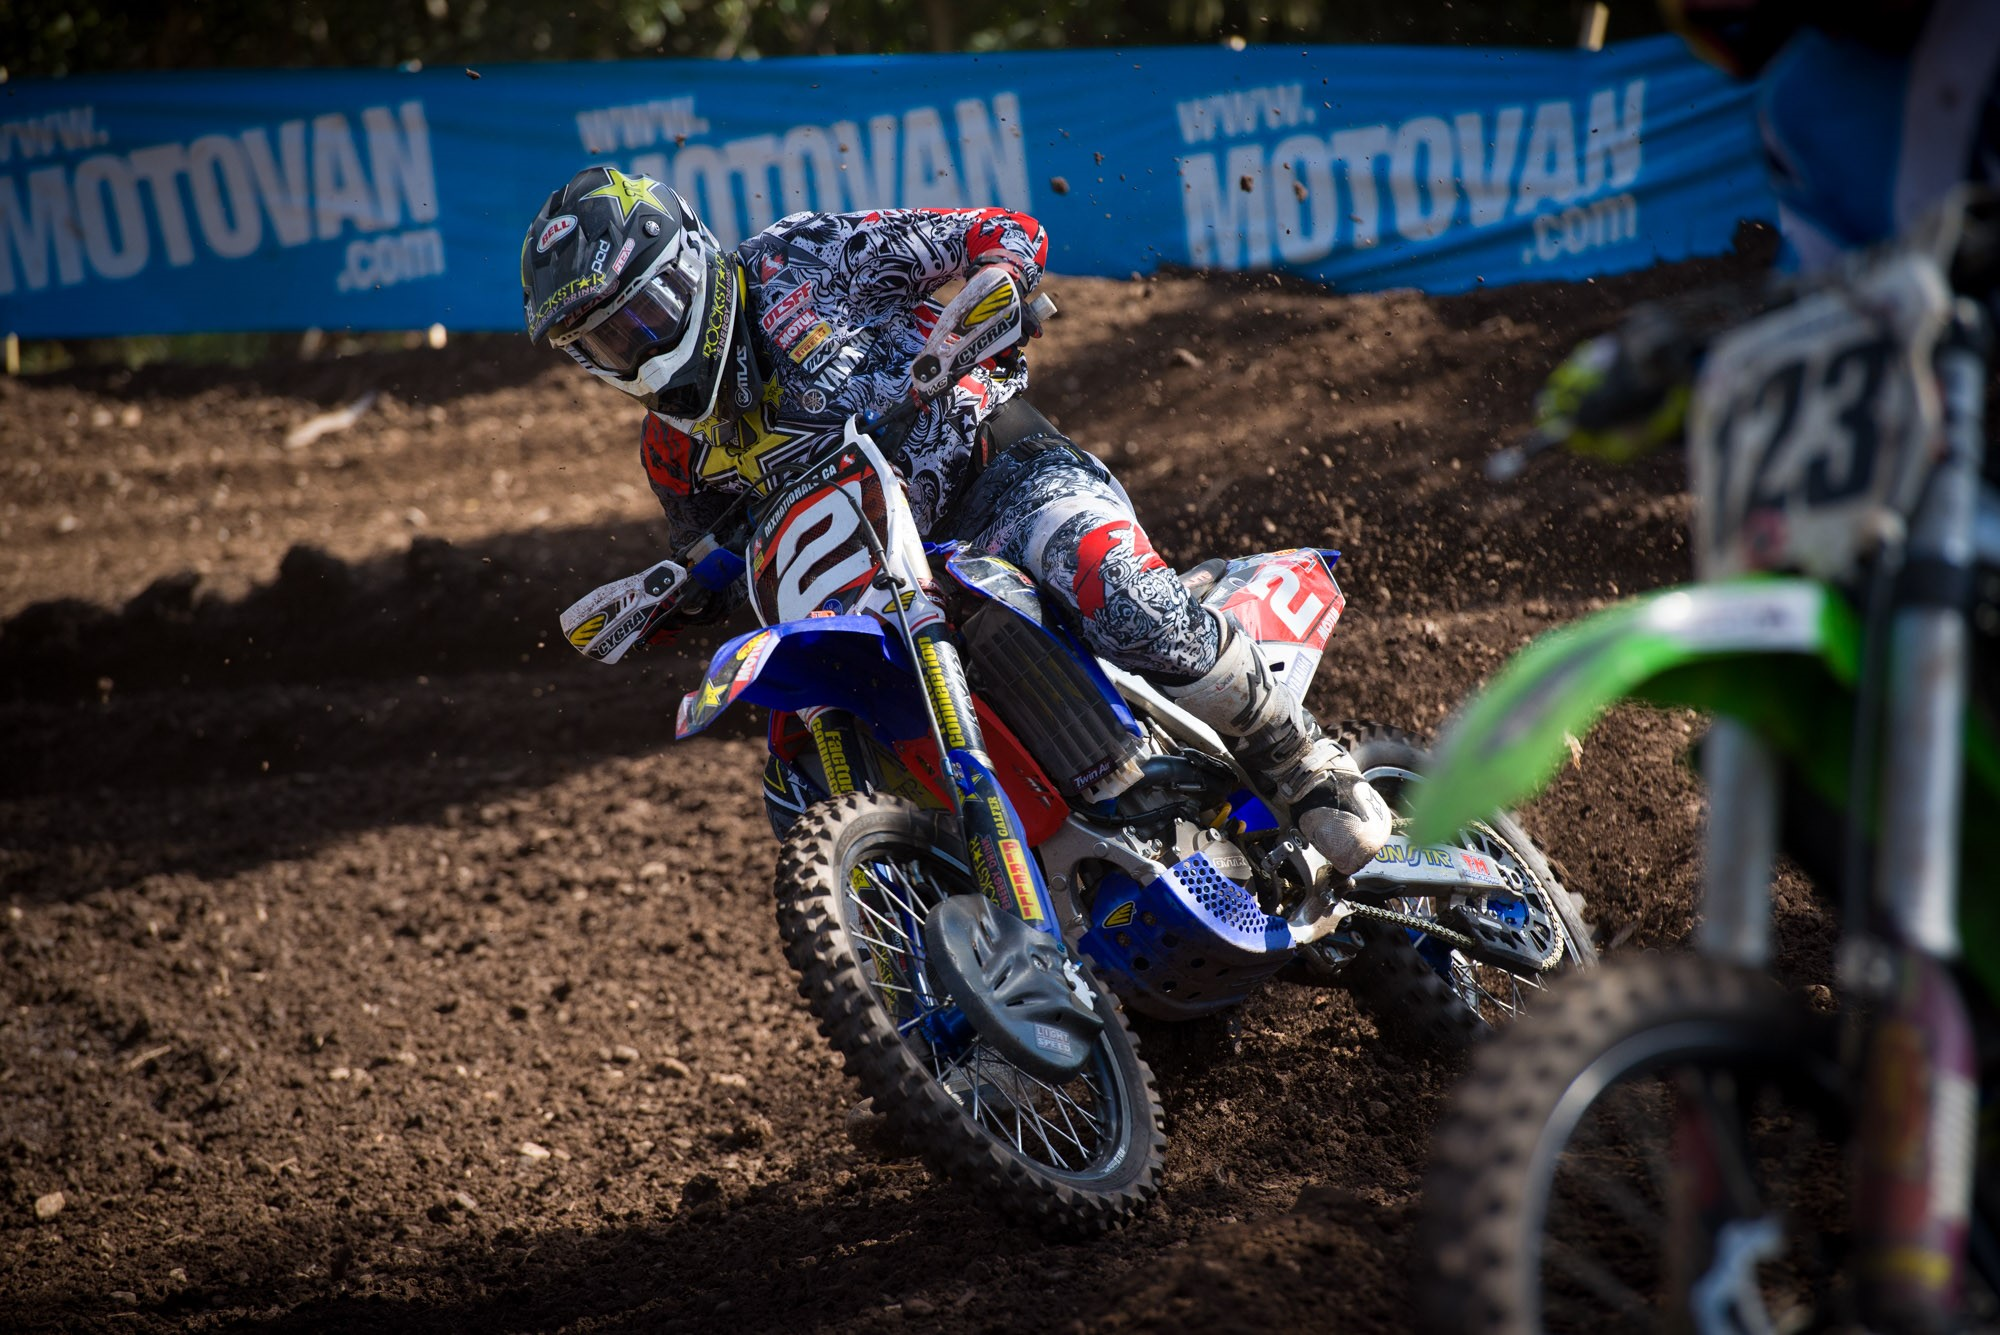 Series points leader Rockstar Energy OTSFF Yamaha's Matt Goerke continued to move closer to his third national title.